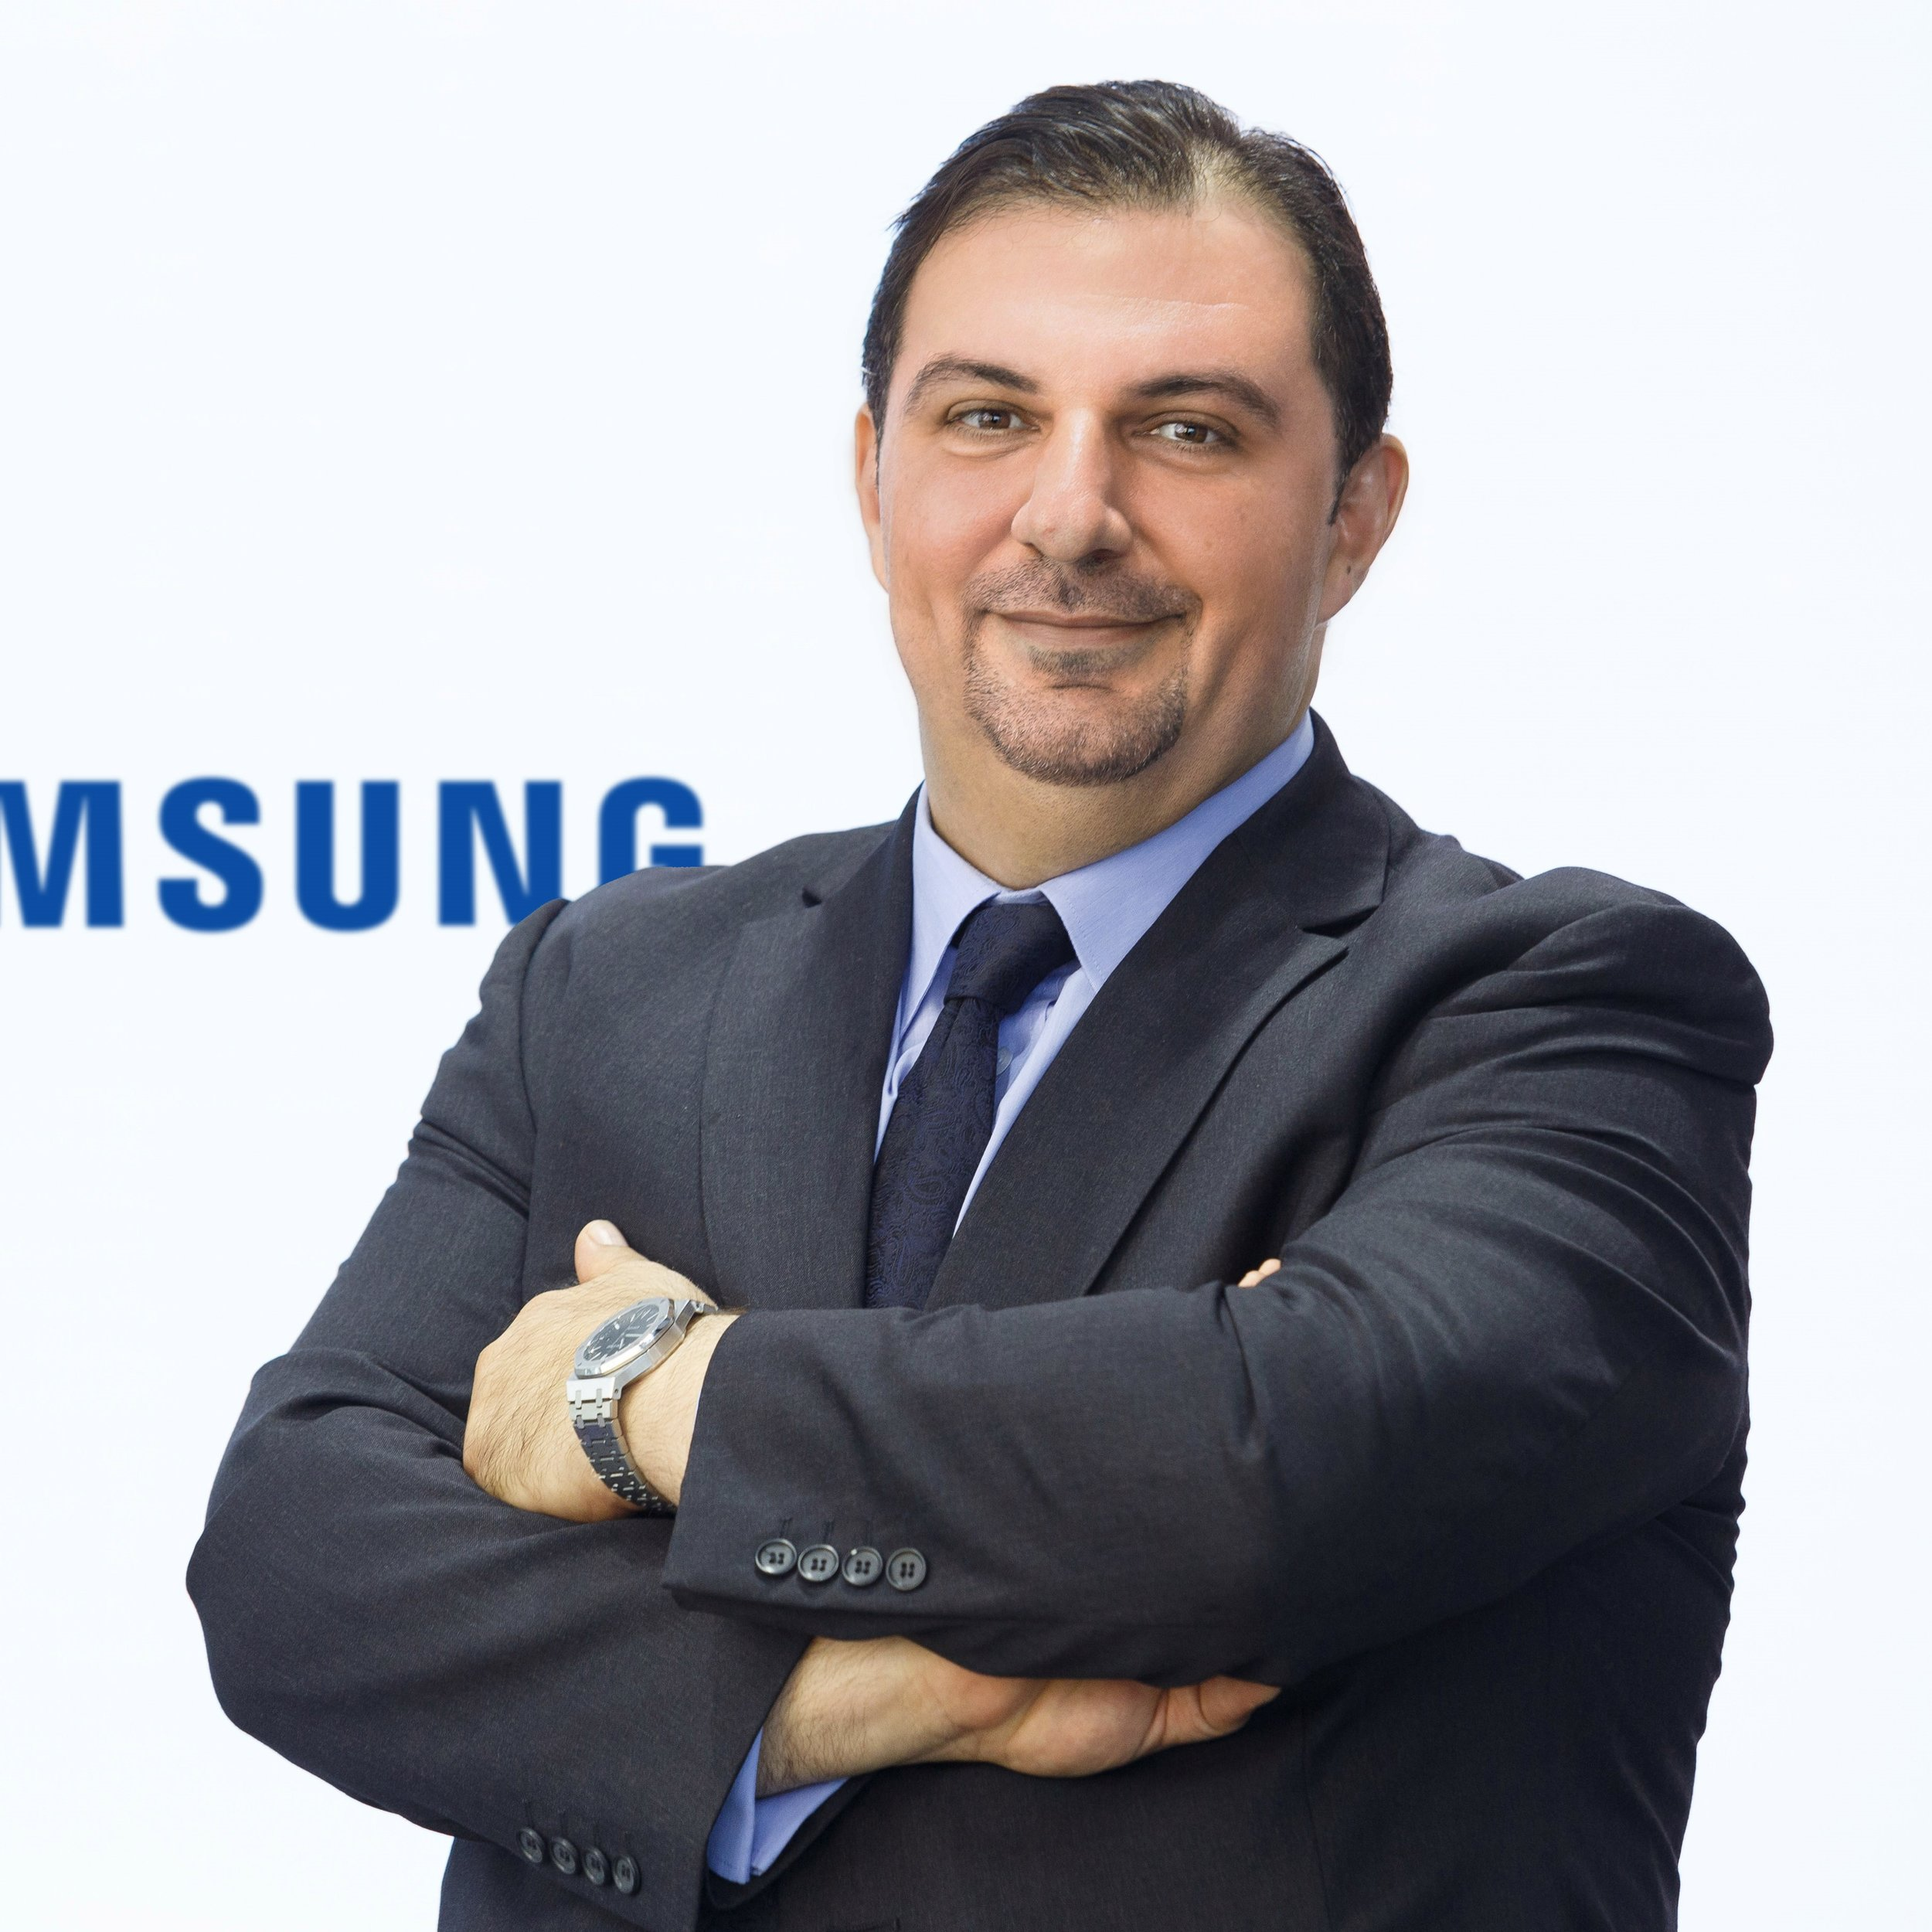 Mohammaed Ghariebeh   Director, IM Enterprise Group and Samsung Pay,  Samsung Gulf Electronics   Mohammed Gharaibeh is Head of Enterprise Business & Samsung Pay services at Samsung Gulf Electronics, where he leads a team of 53 professionals across the Gulf region. He brings to the role a distinguished career at Samsung Gulf Electronics and leading technology firms across the region. Prior to his current position he served as General Manager of the Digital Appliances and IOT Sales unit, developing new business channels and maintaining the company's long-standing partnerships with local distributors and major retailers. Prior to joining Samsung, Mohammed held several senior positions in the Gulf, including Injazat Data Systems – Mubadala Group, NexNet Solutions and Gulf Smart Solutions. It was this background in information systems and technology services that laid the groundwork for his success. Nearly two decades ago, he began his career with telecommunications giants such as du, Dubai Internet City and Juma Al Majid Group. Mohammed is a double MBA holder. He received his first Master's degree of Data Centre Design and Development followed with Management Business Administration in Executive Management from Nixon University in the United States. He graduated in Telecommunications and Computer Science from the University of Yarmouk in Jordan.